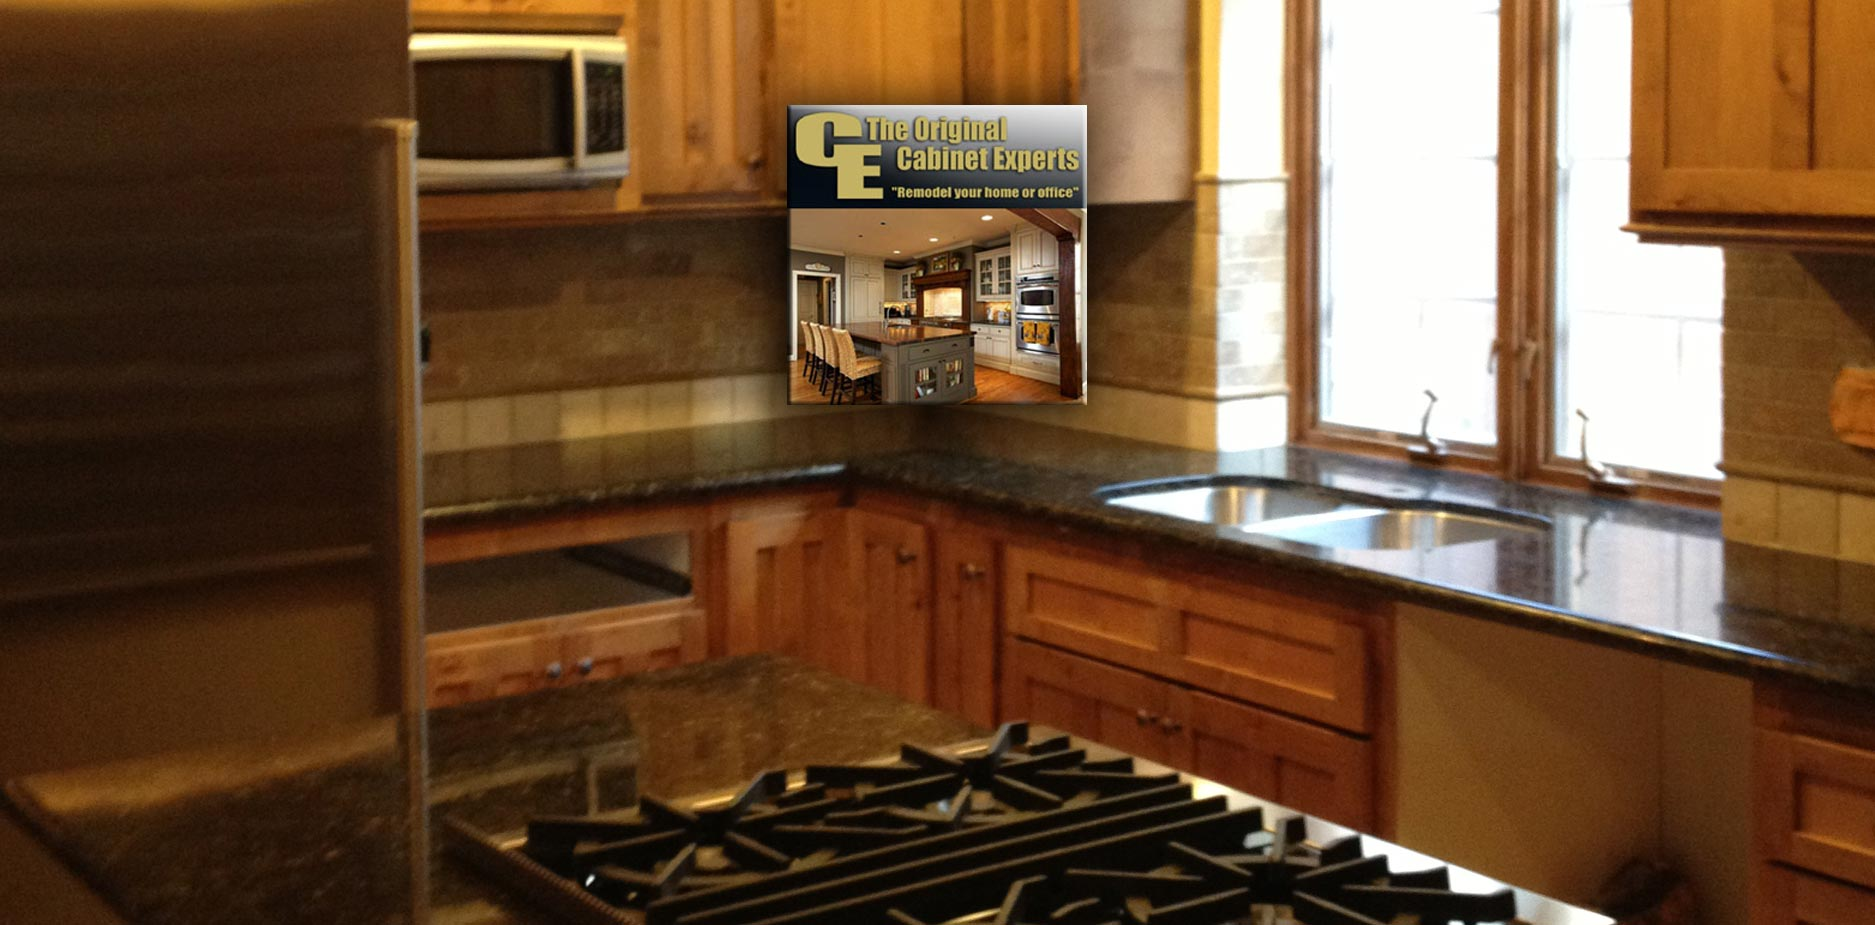 Cabinet refacing and replacement